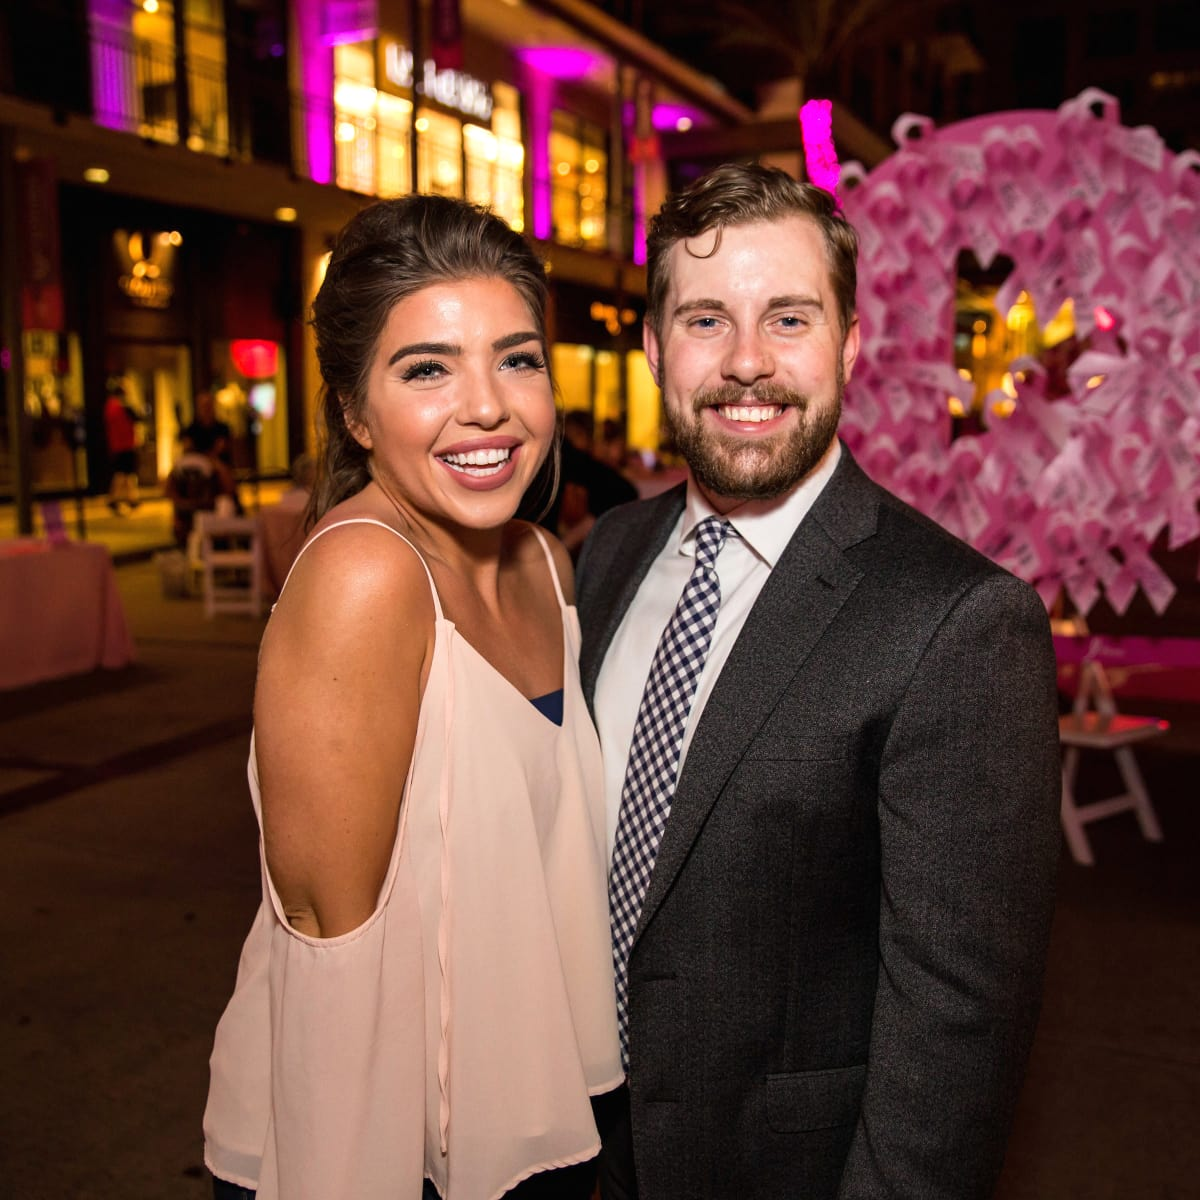 Houston, Marcy, West Ave Pink Party, October 2017, Madison Payne, Chance Vaughn